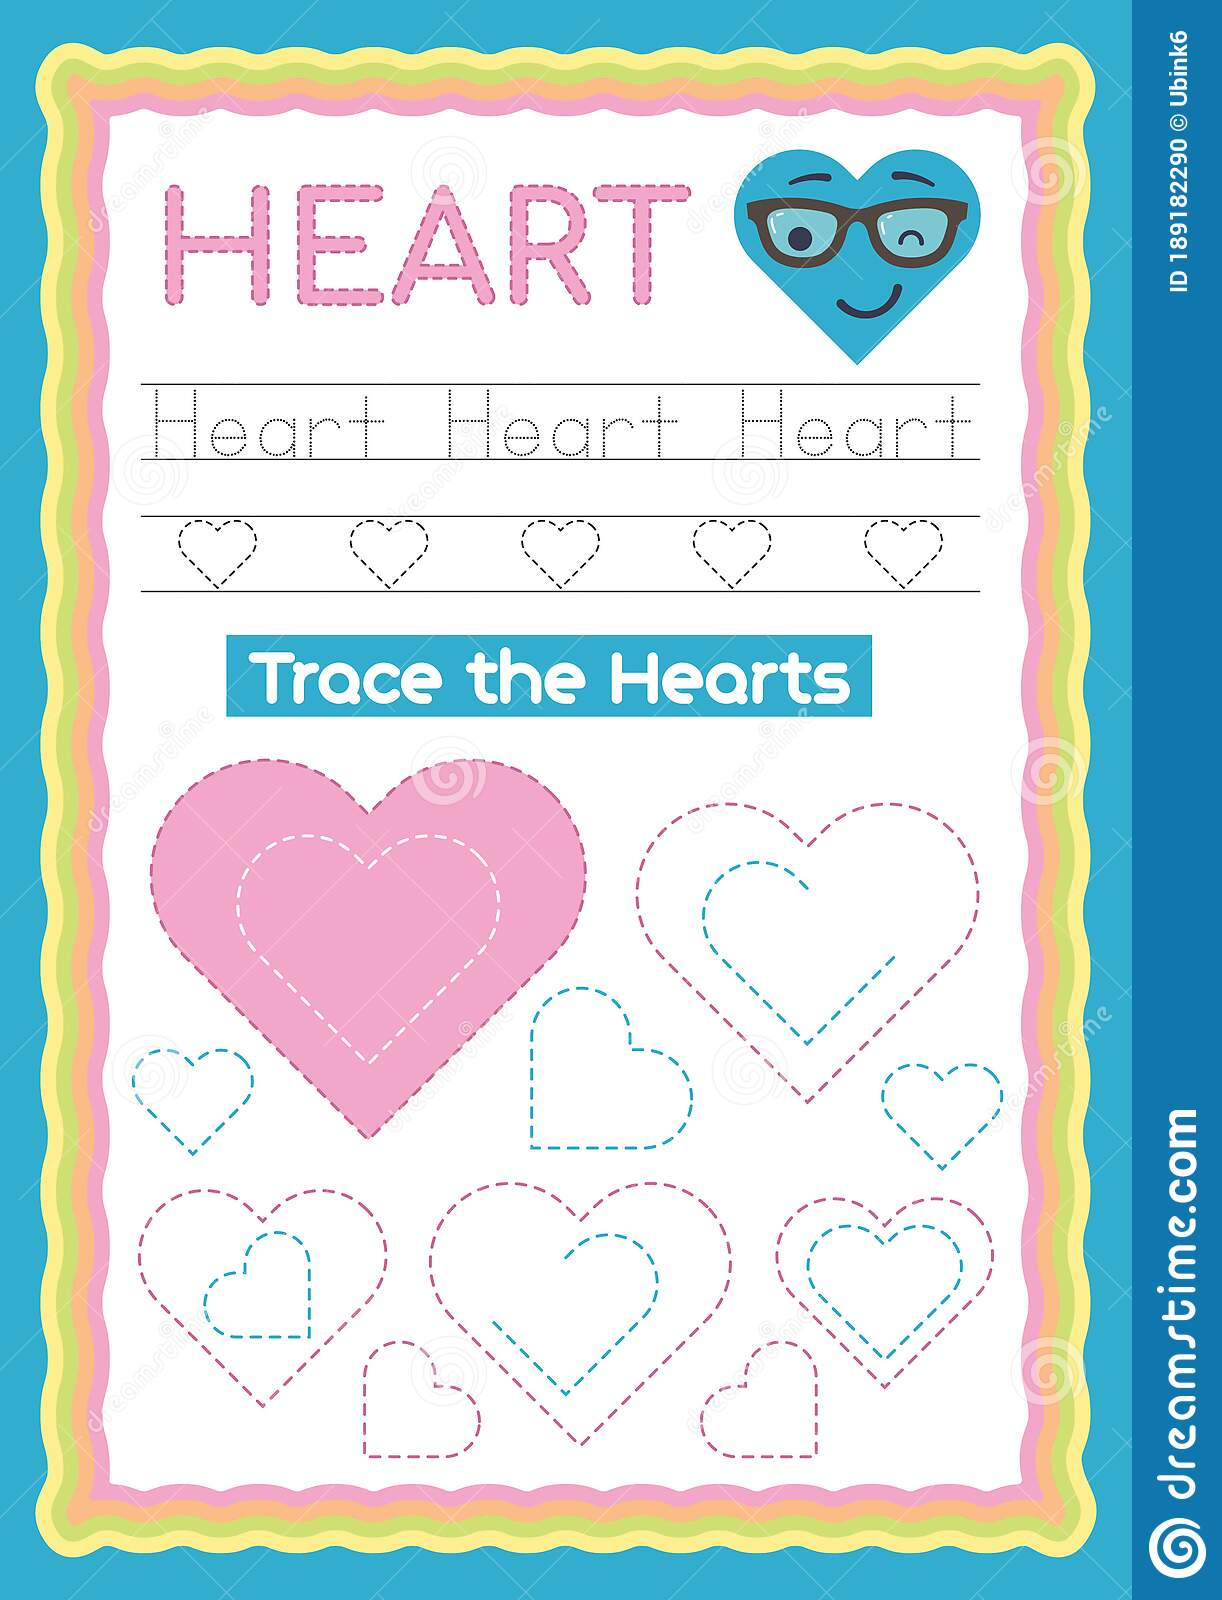 Preschool Colorful Heart Shape Tracing And Writing Daily